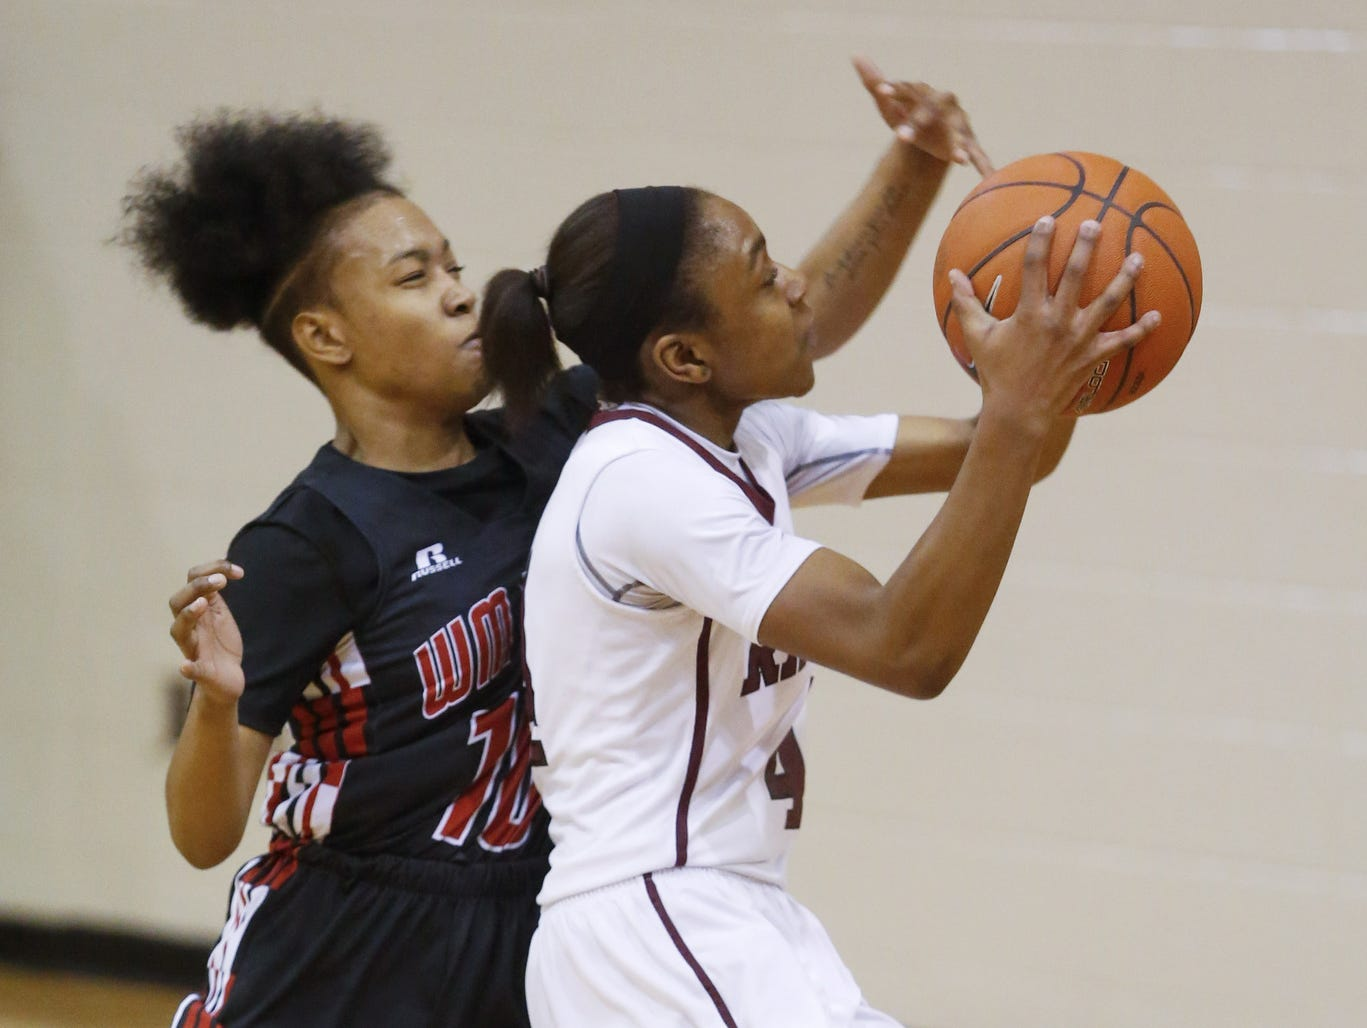 Concord's Aahliyah Selby drives to the basket in front of William Penn's AlizeFelton in Concord's 50-34 win Thursday.